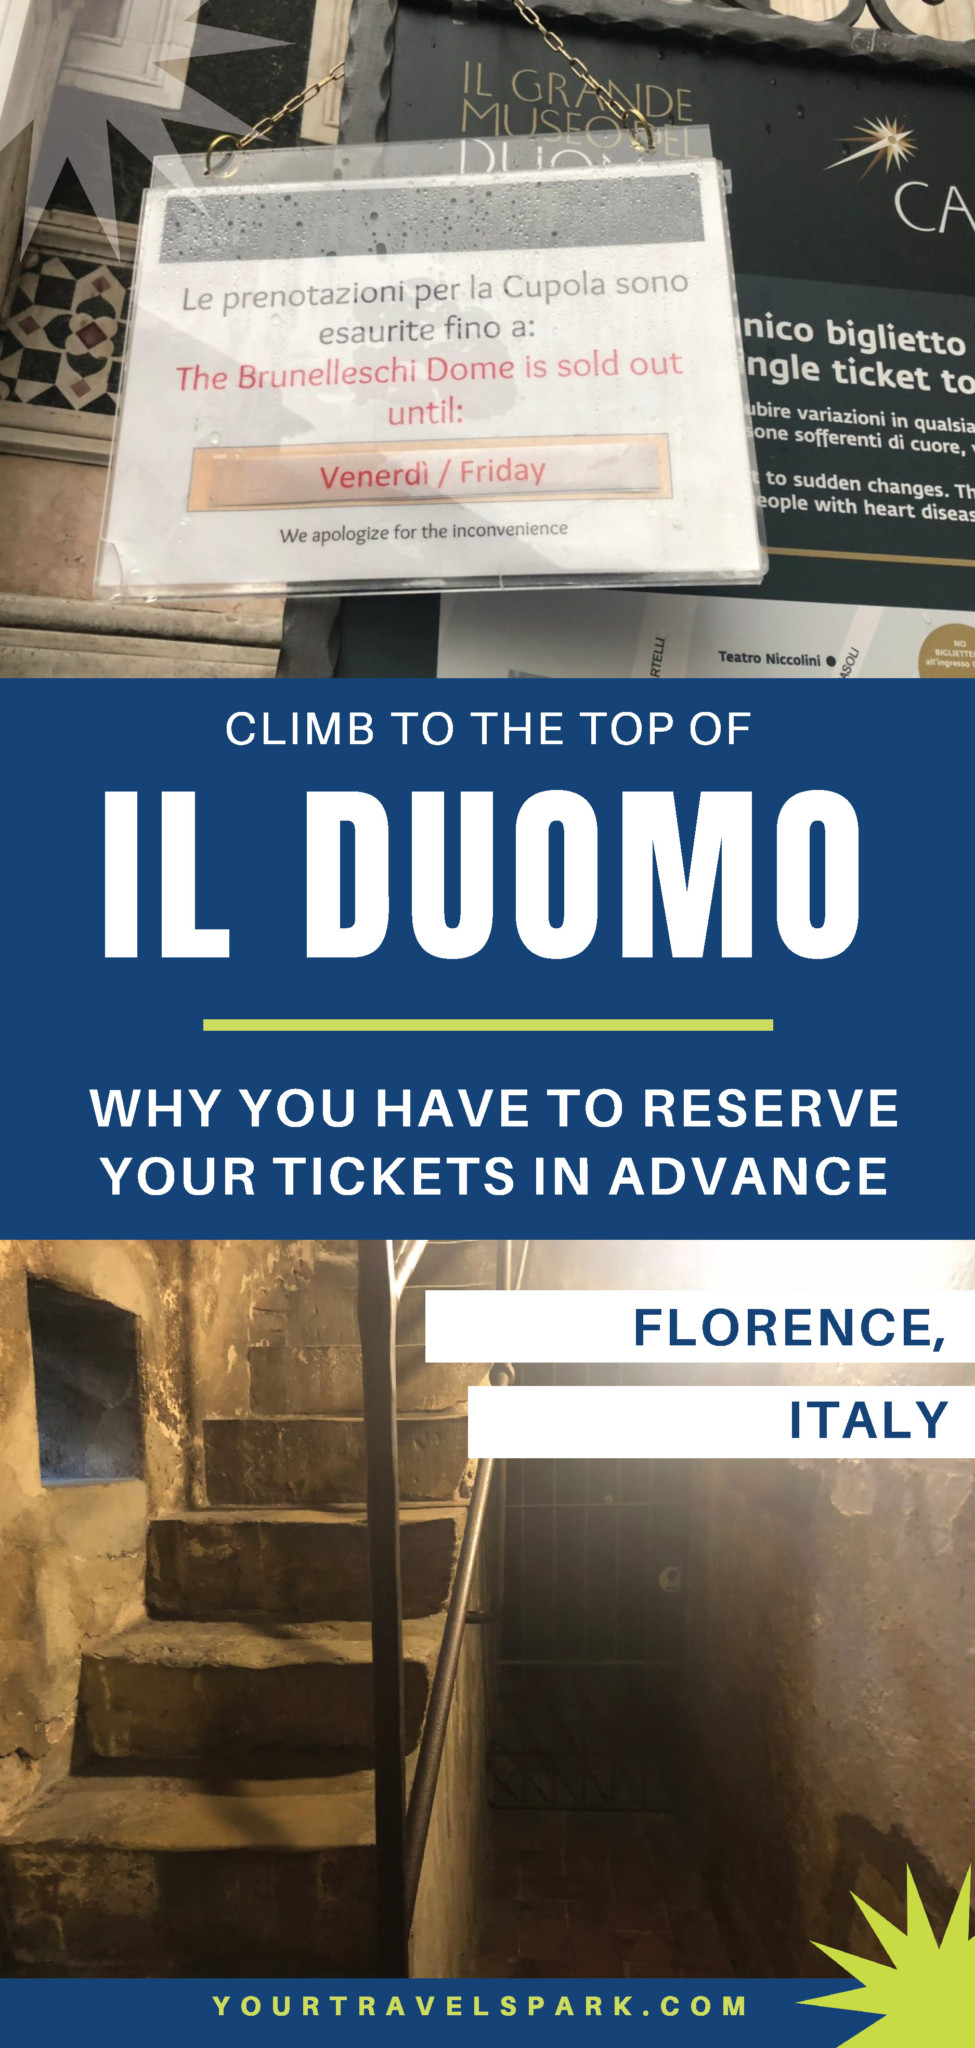 There is plenty to do in Florence, Italy, here are some of our favorite things to do including climbing Il Duomo in Florence, and why you have to reserve your tickets in advance. #florence #florenceitaly #italia #italy #florenceitalia #hotelpendini #pendini #hotels #florencehotels #florencehotel #placestostayinflorence #firenze #firenzeitaly #firenzeitalia #thingstodoinflorence #tuscany #tuscanyitaly #ilduomo #thedome #dome #domeflorence #ilduomoflorence #ilduomofirenze